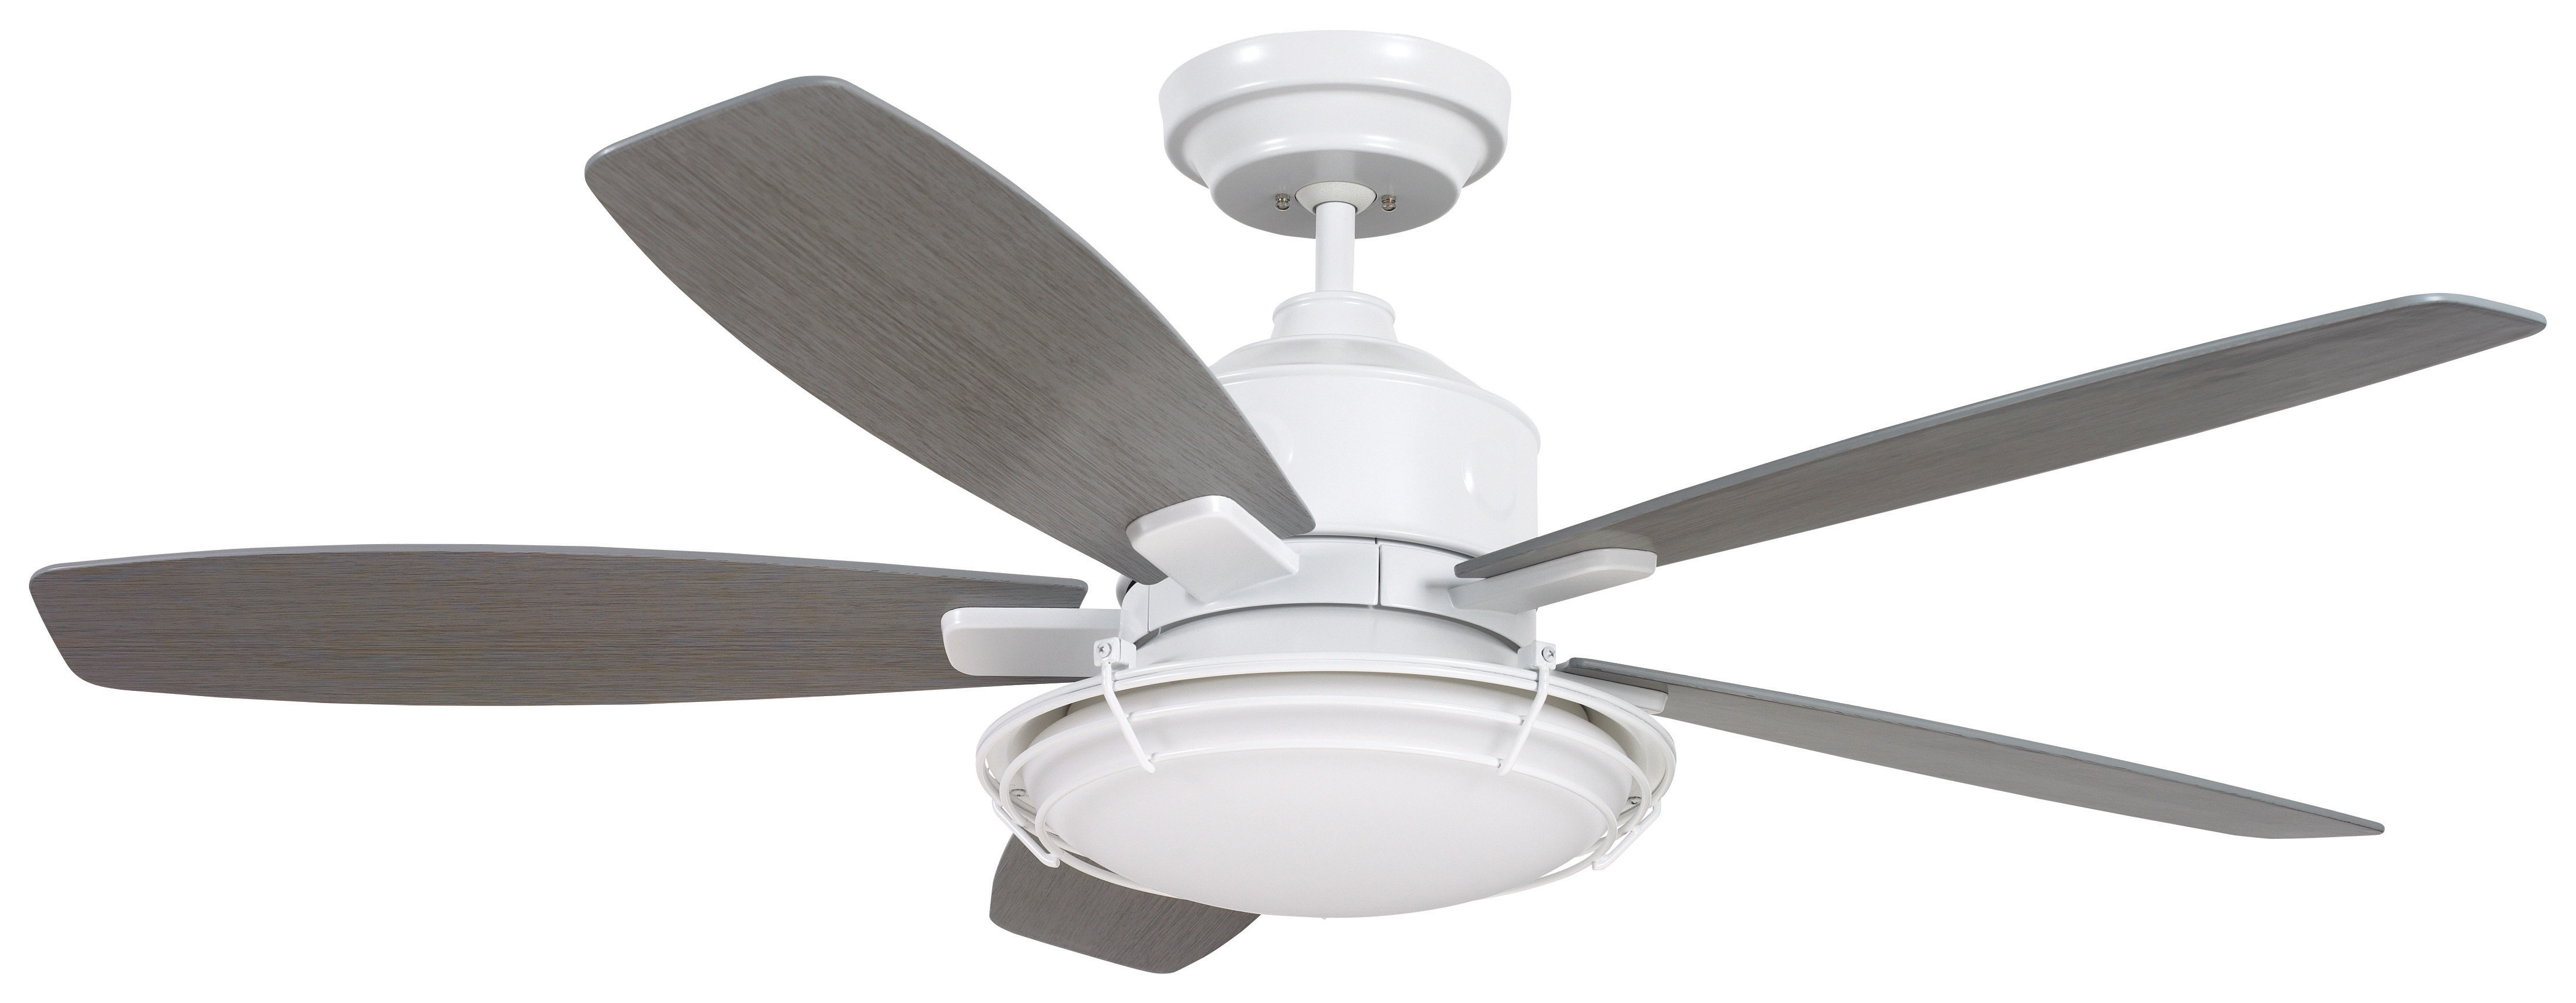 """2019 Acero Retro 3 Blade Led Ceiling Fans Throughout 54"""" Jeanine 5 Blade Outdoor Ceiling Fan (View 1 of 20)"""